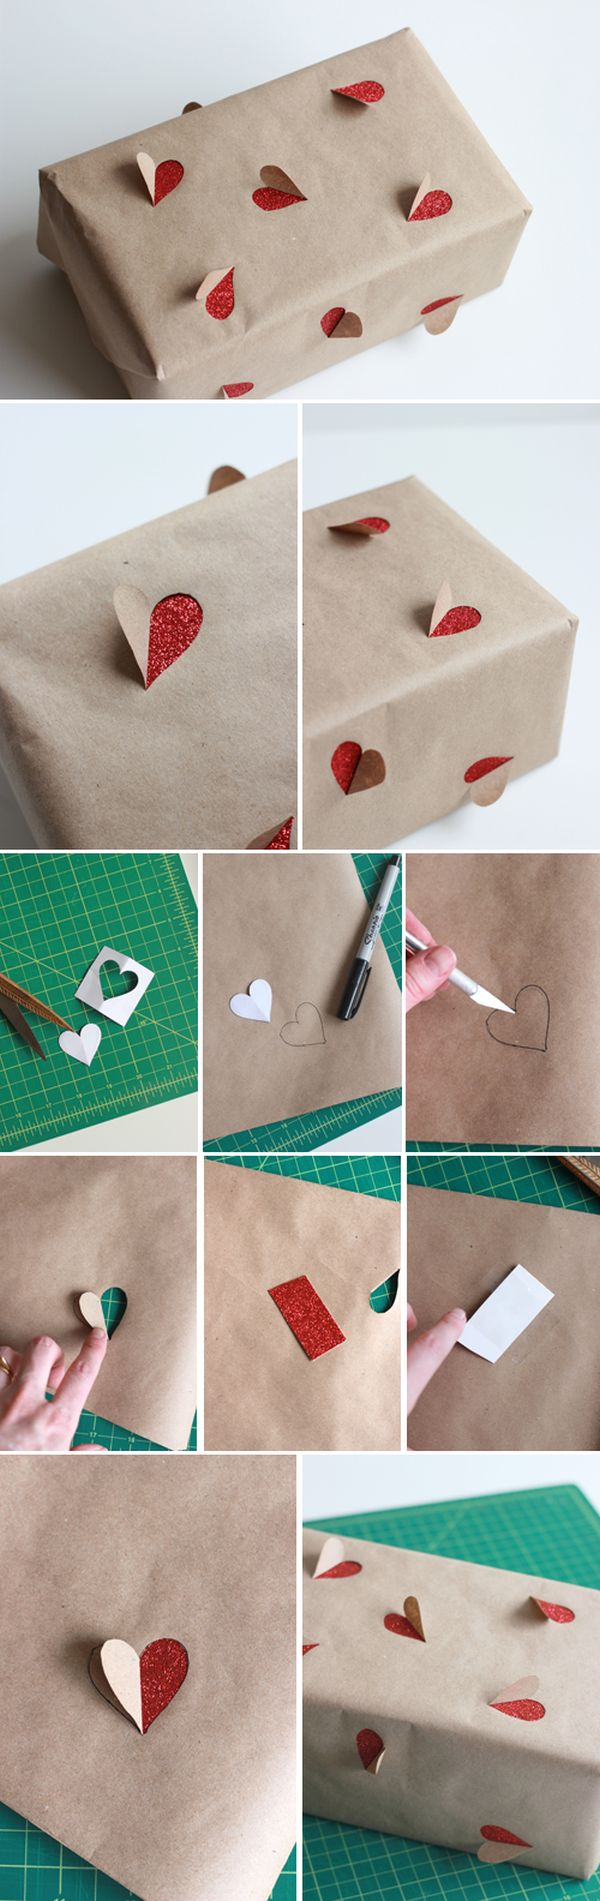 3D heart gift wrapping idea